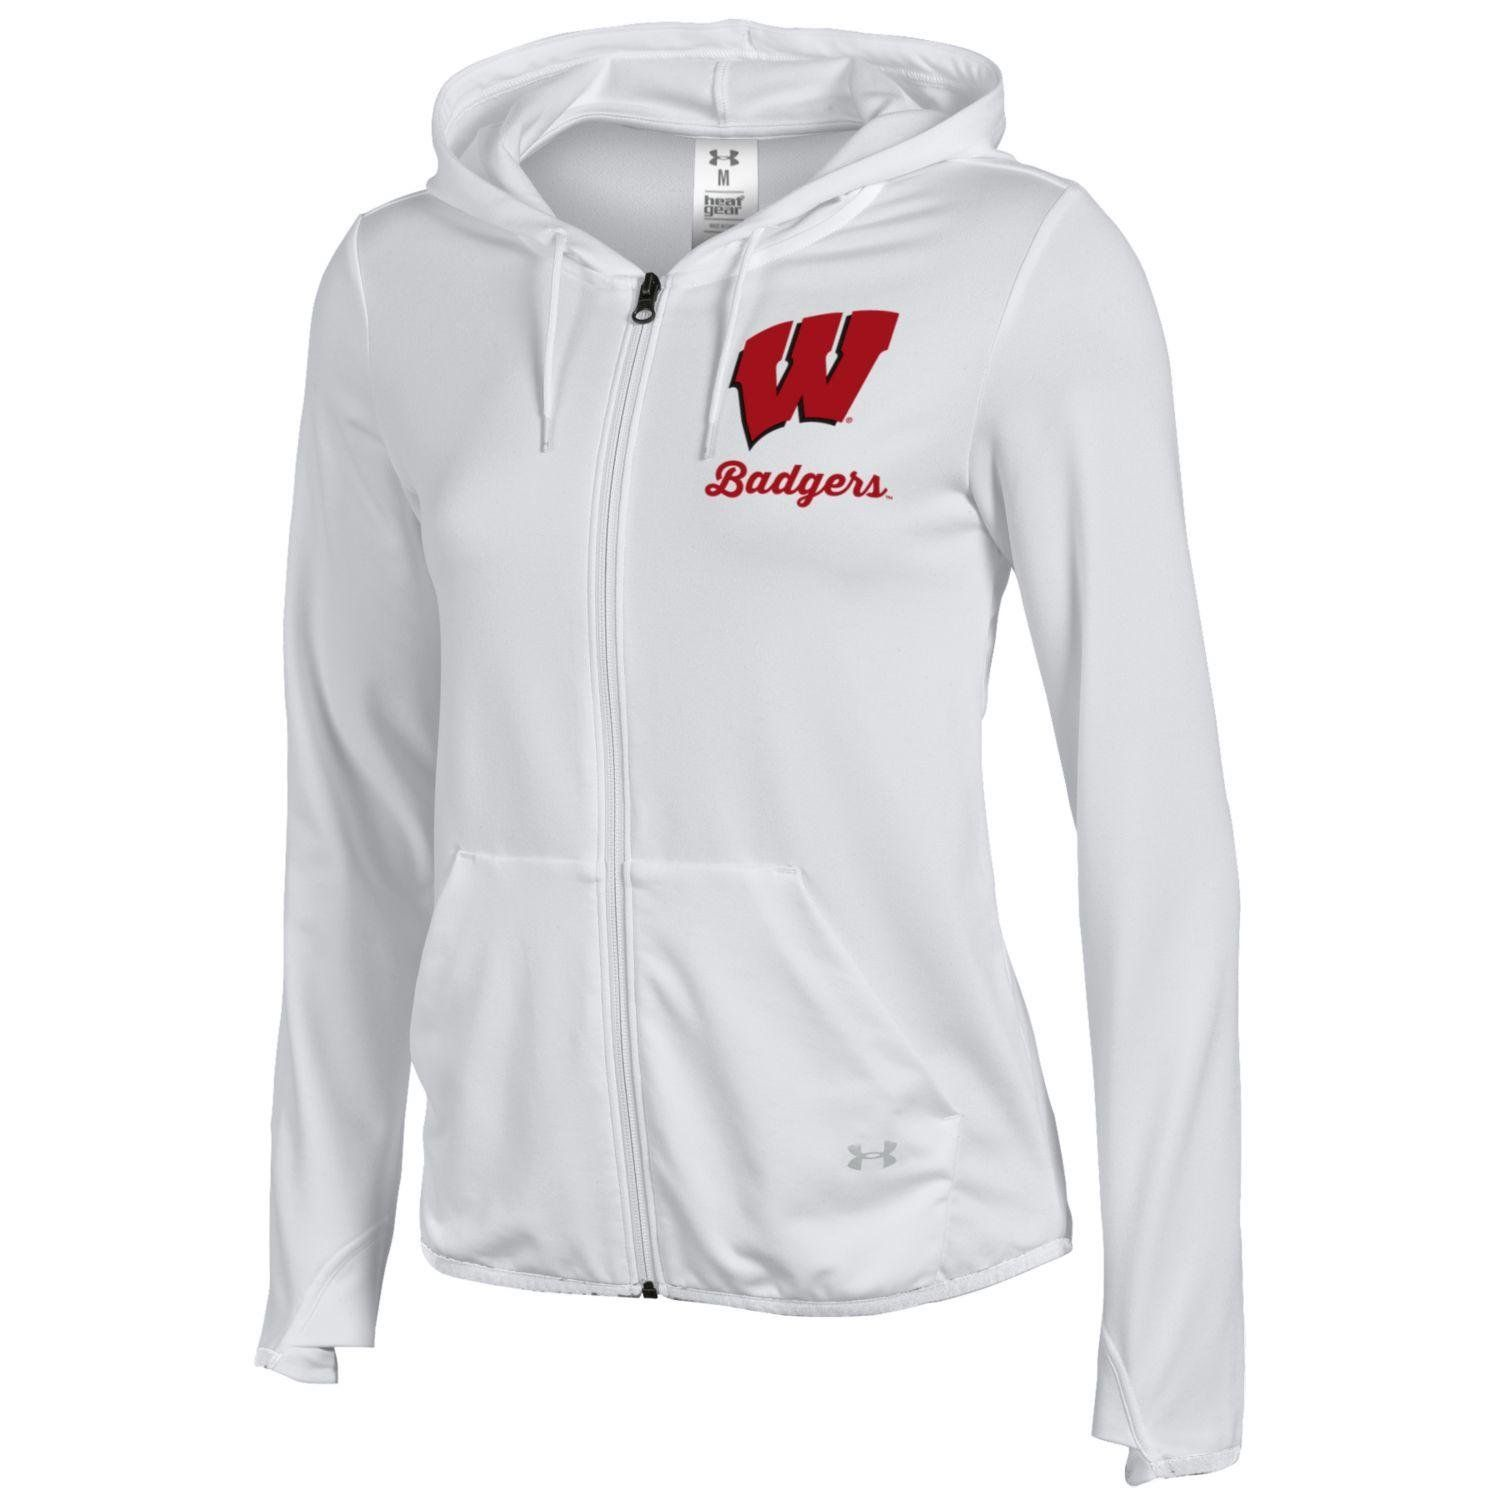 7b33398f7 Under Armour NCAA Wisconsin Badgers Womens FullZip Hoodie Medium White --  Find out more about